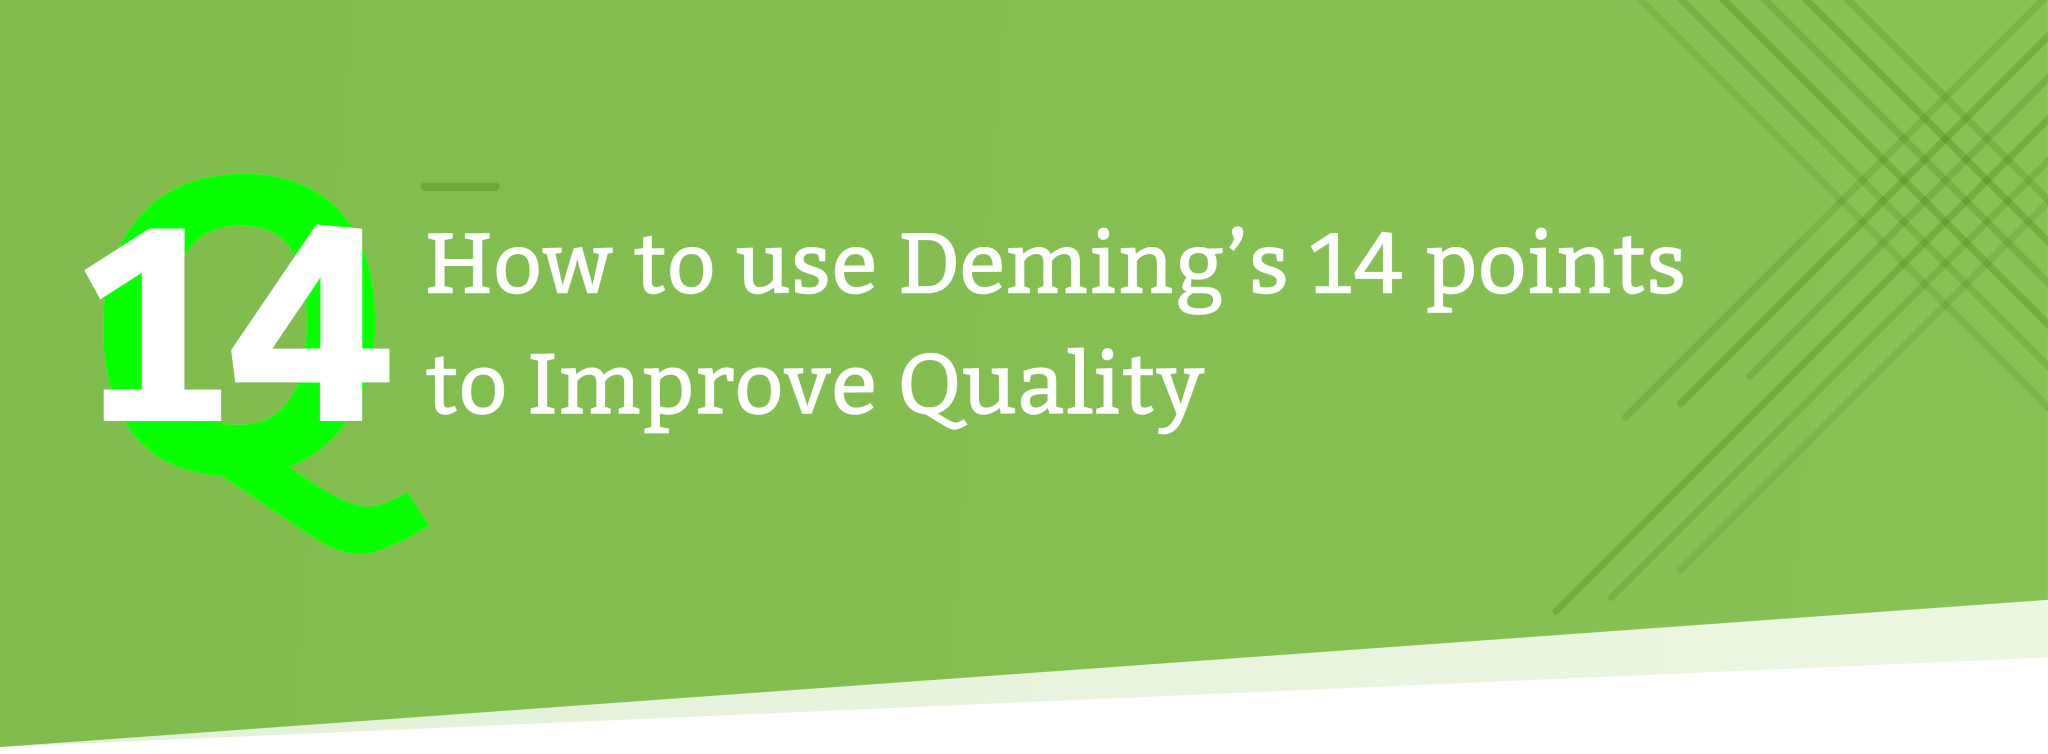 How to Use Deming's 14 Points to Improve Quality - Tallyfy